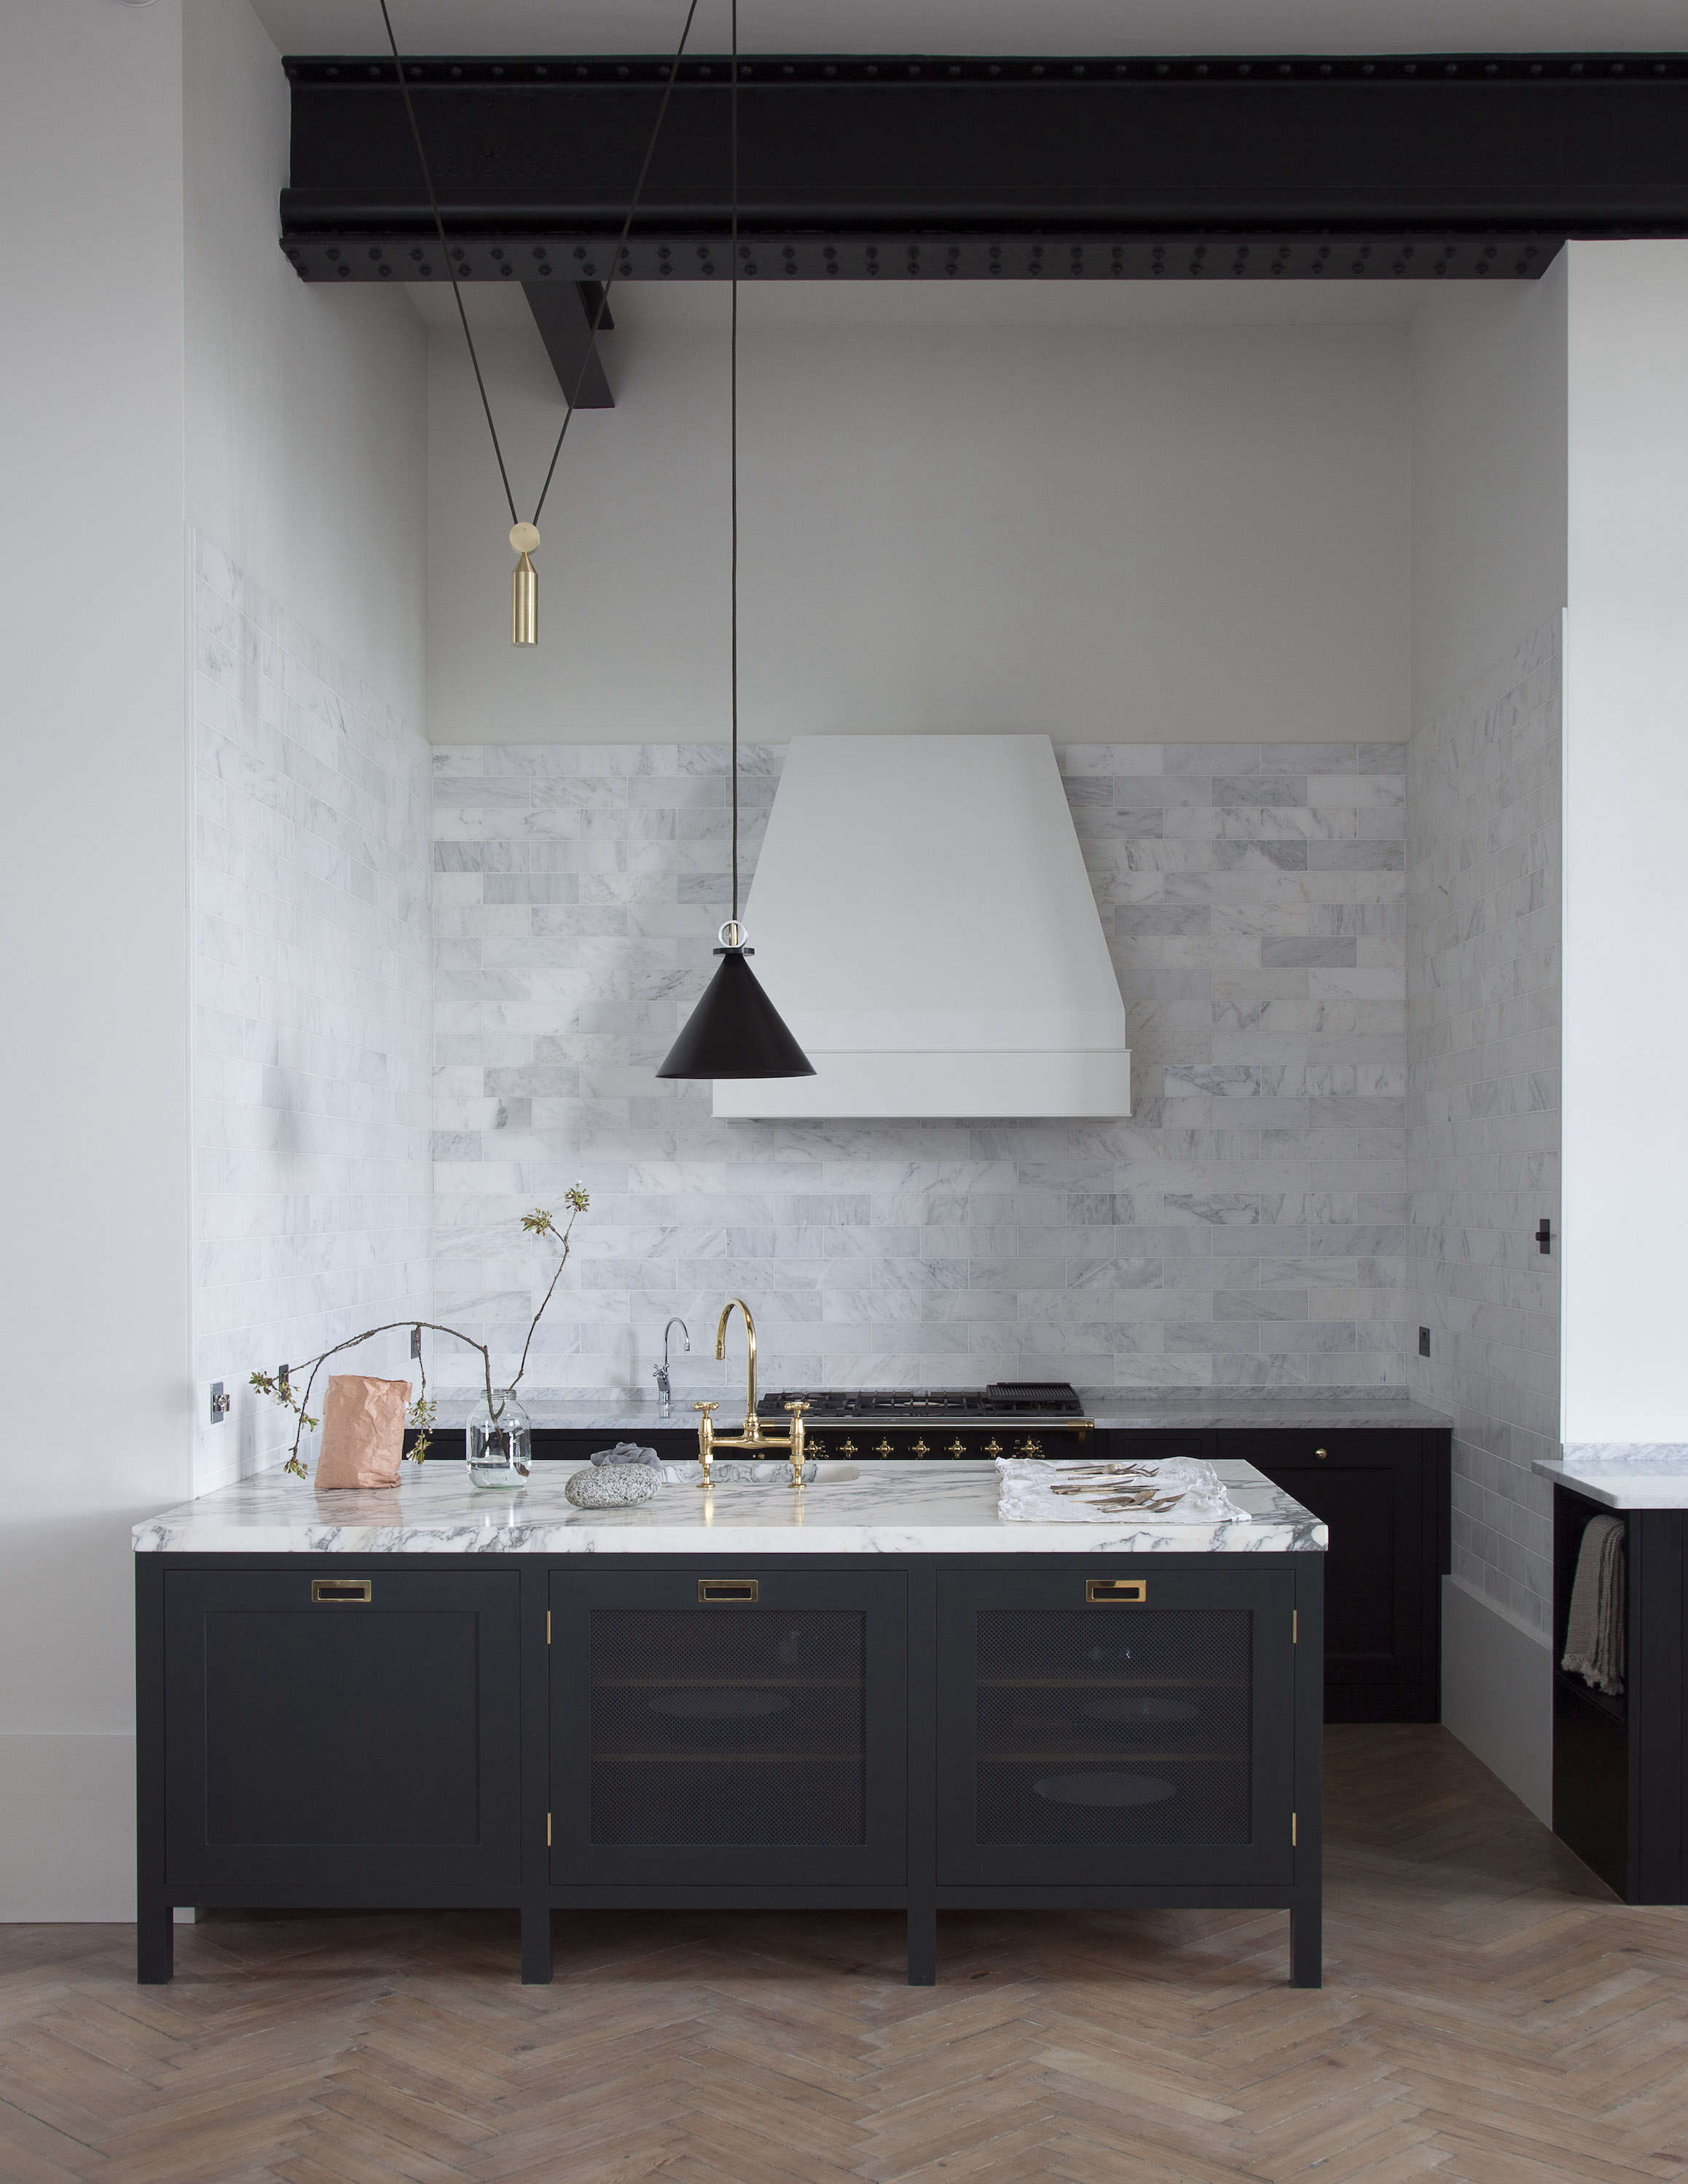 now available in the us: uk design company plain english's kitchens | remodelis 9